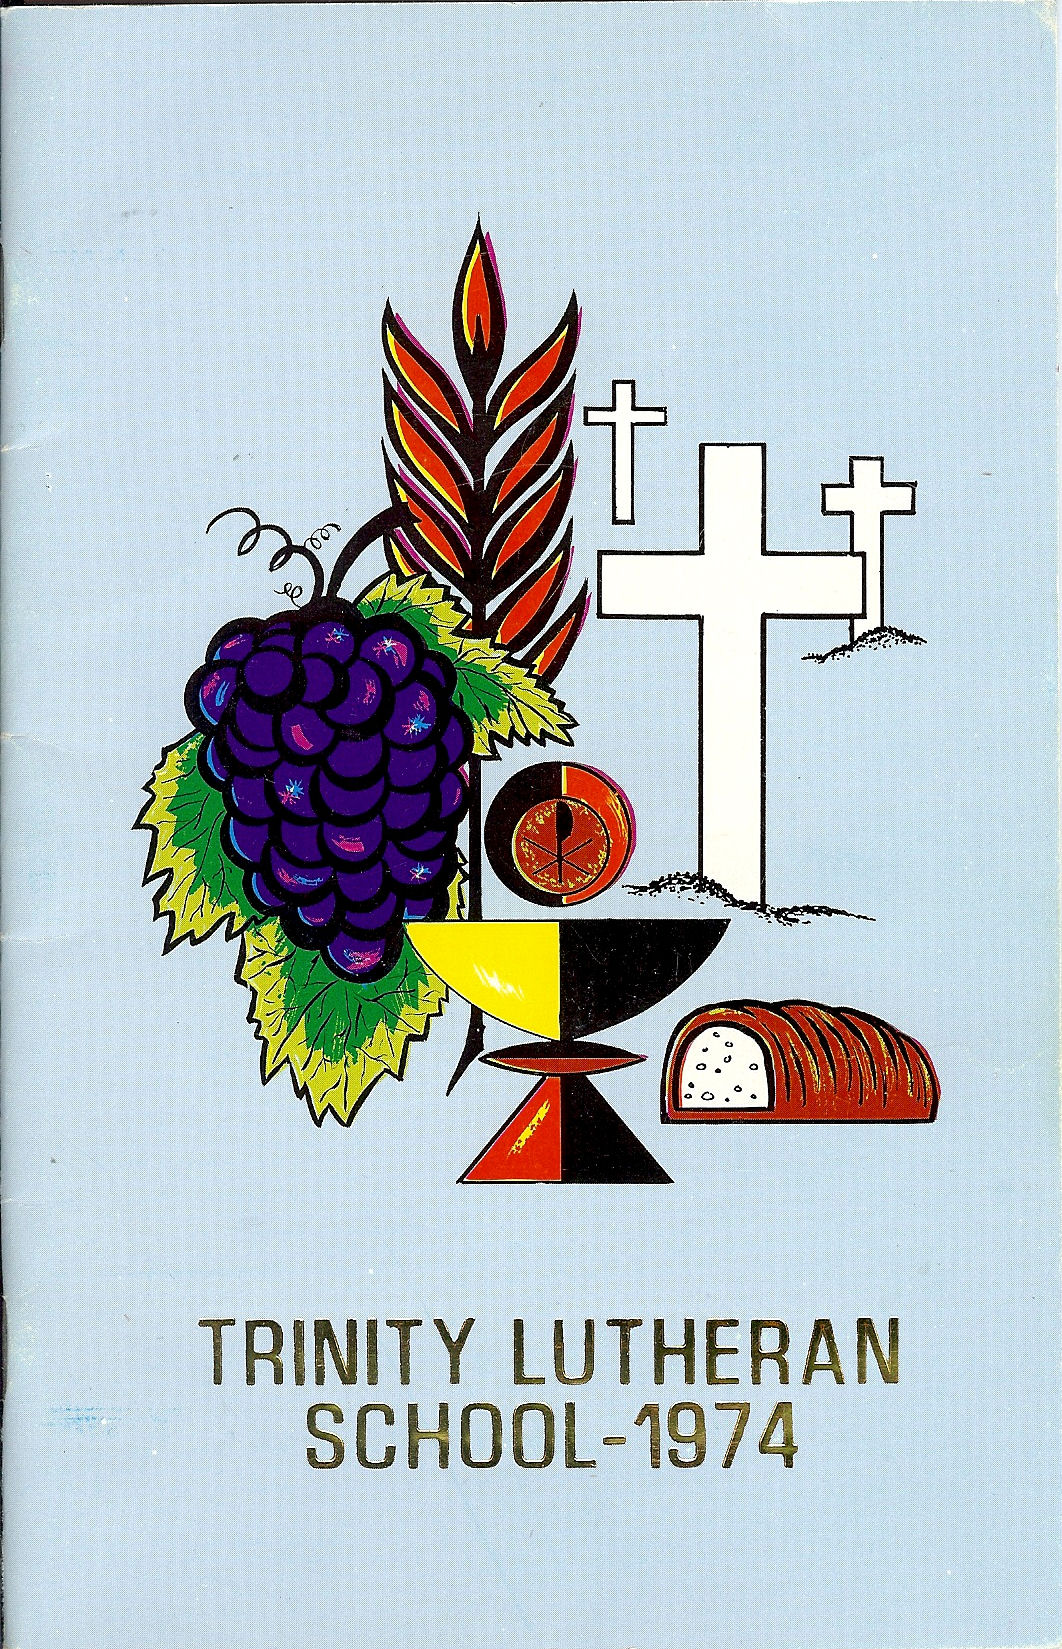 73-74 Yearbook Cover